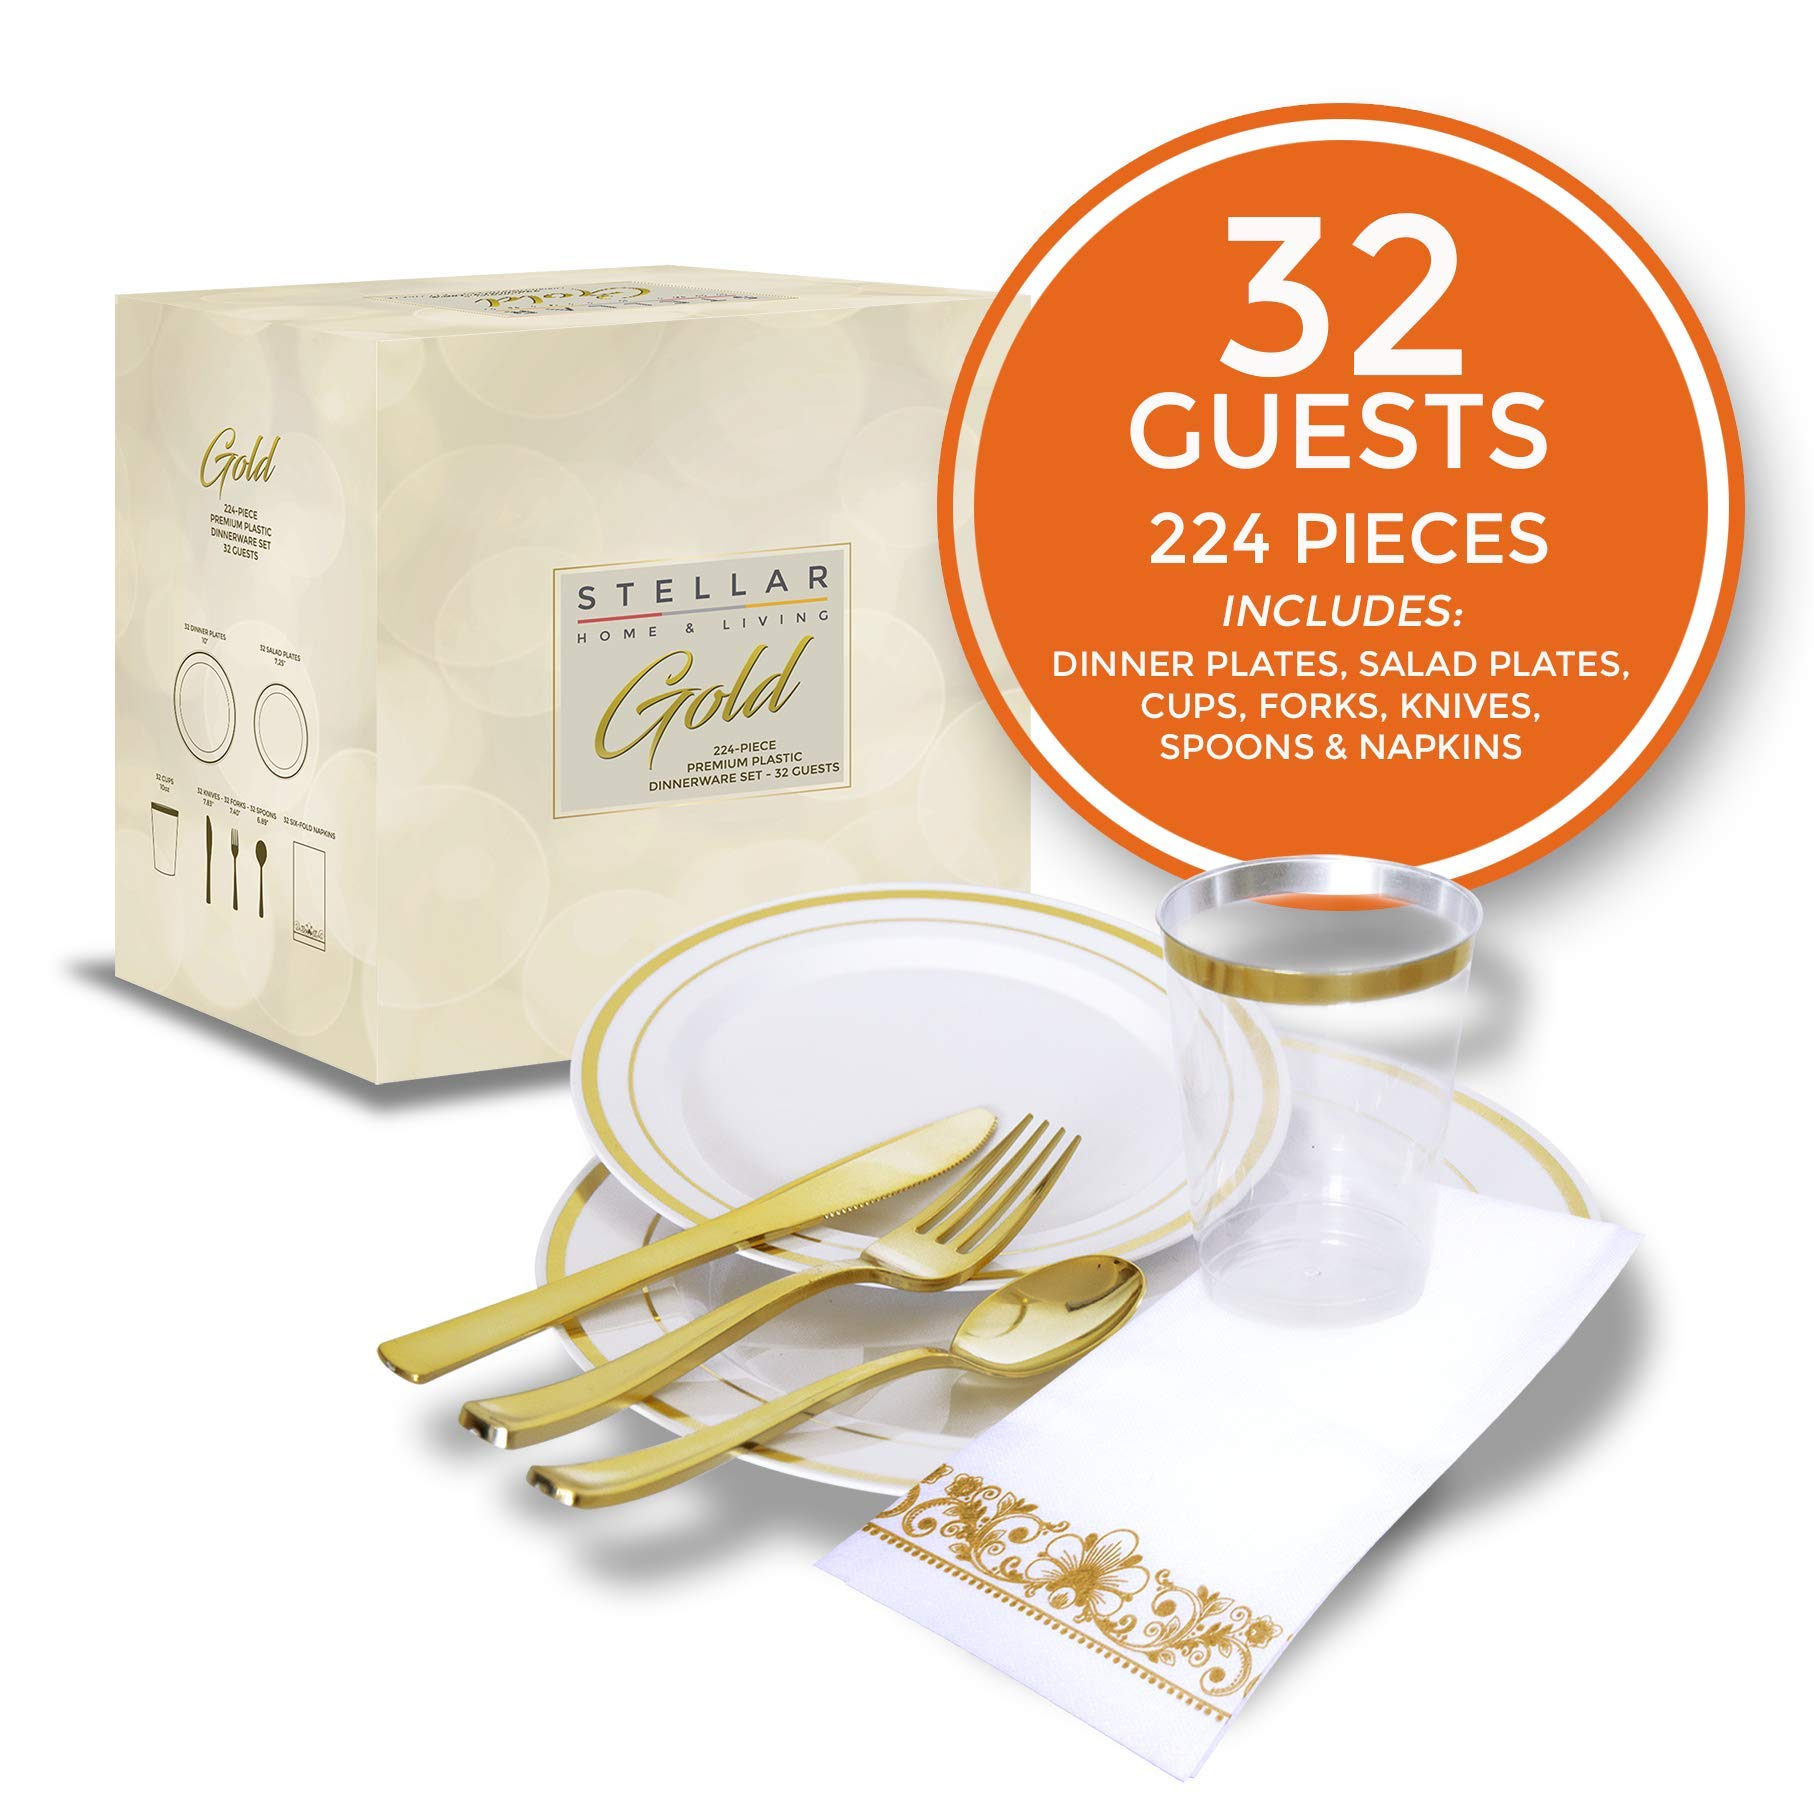 224 pcs Gold Party Dinnerware Set for 32 Guests|Disposable Gold Plastic Plates with Gold Rimmed Cups Silverware and Napkins|Ideal for Parties, Weddings, Thanksgivings|Heavyduty Hard for 30+ Guests